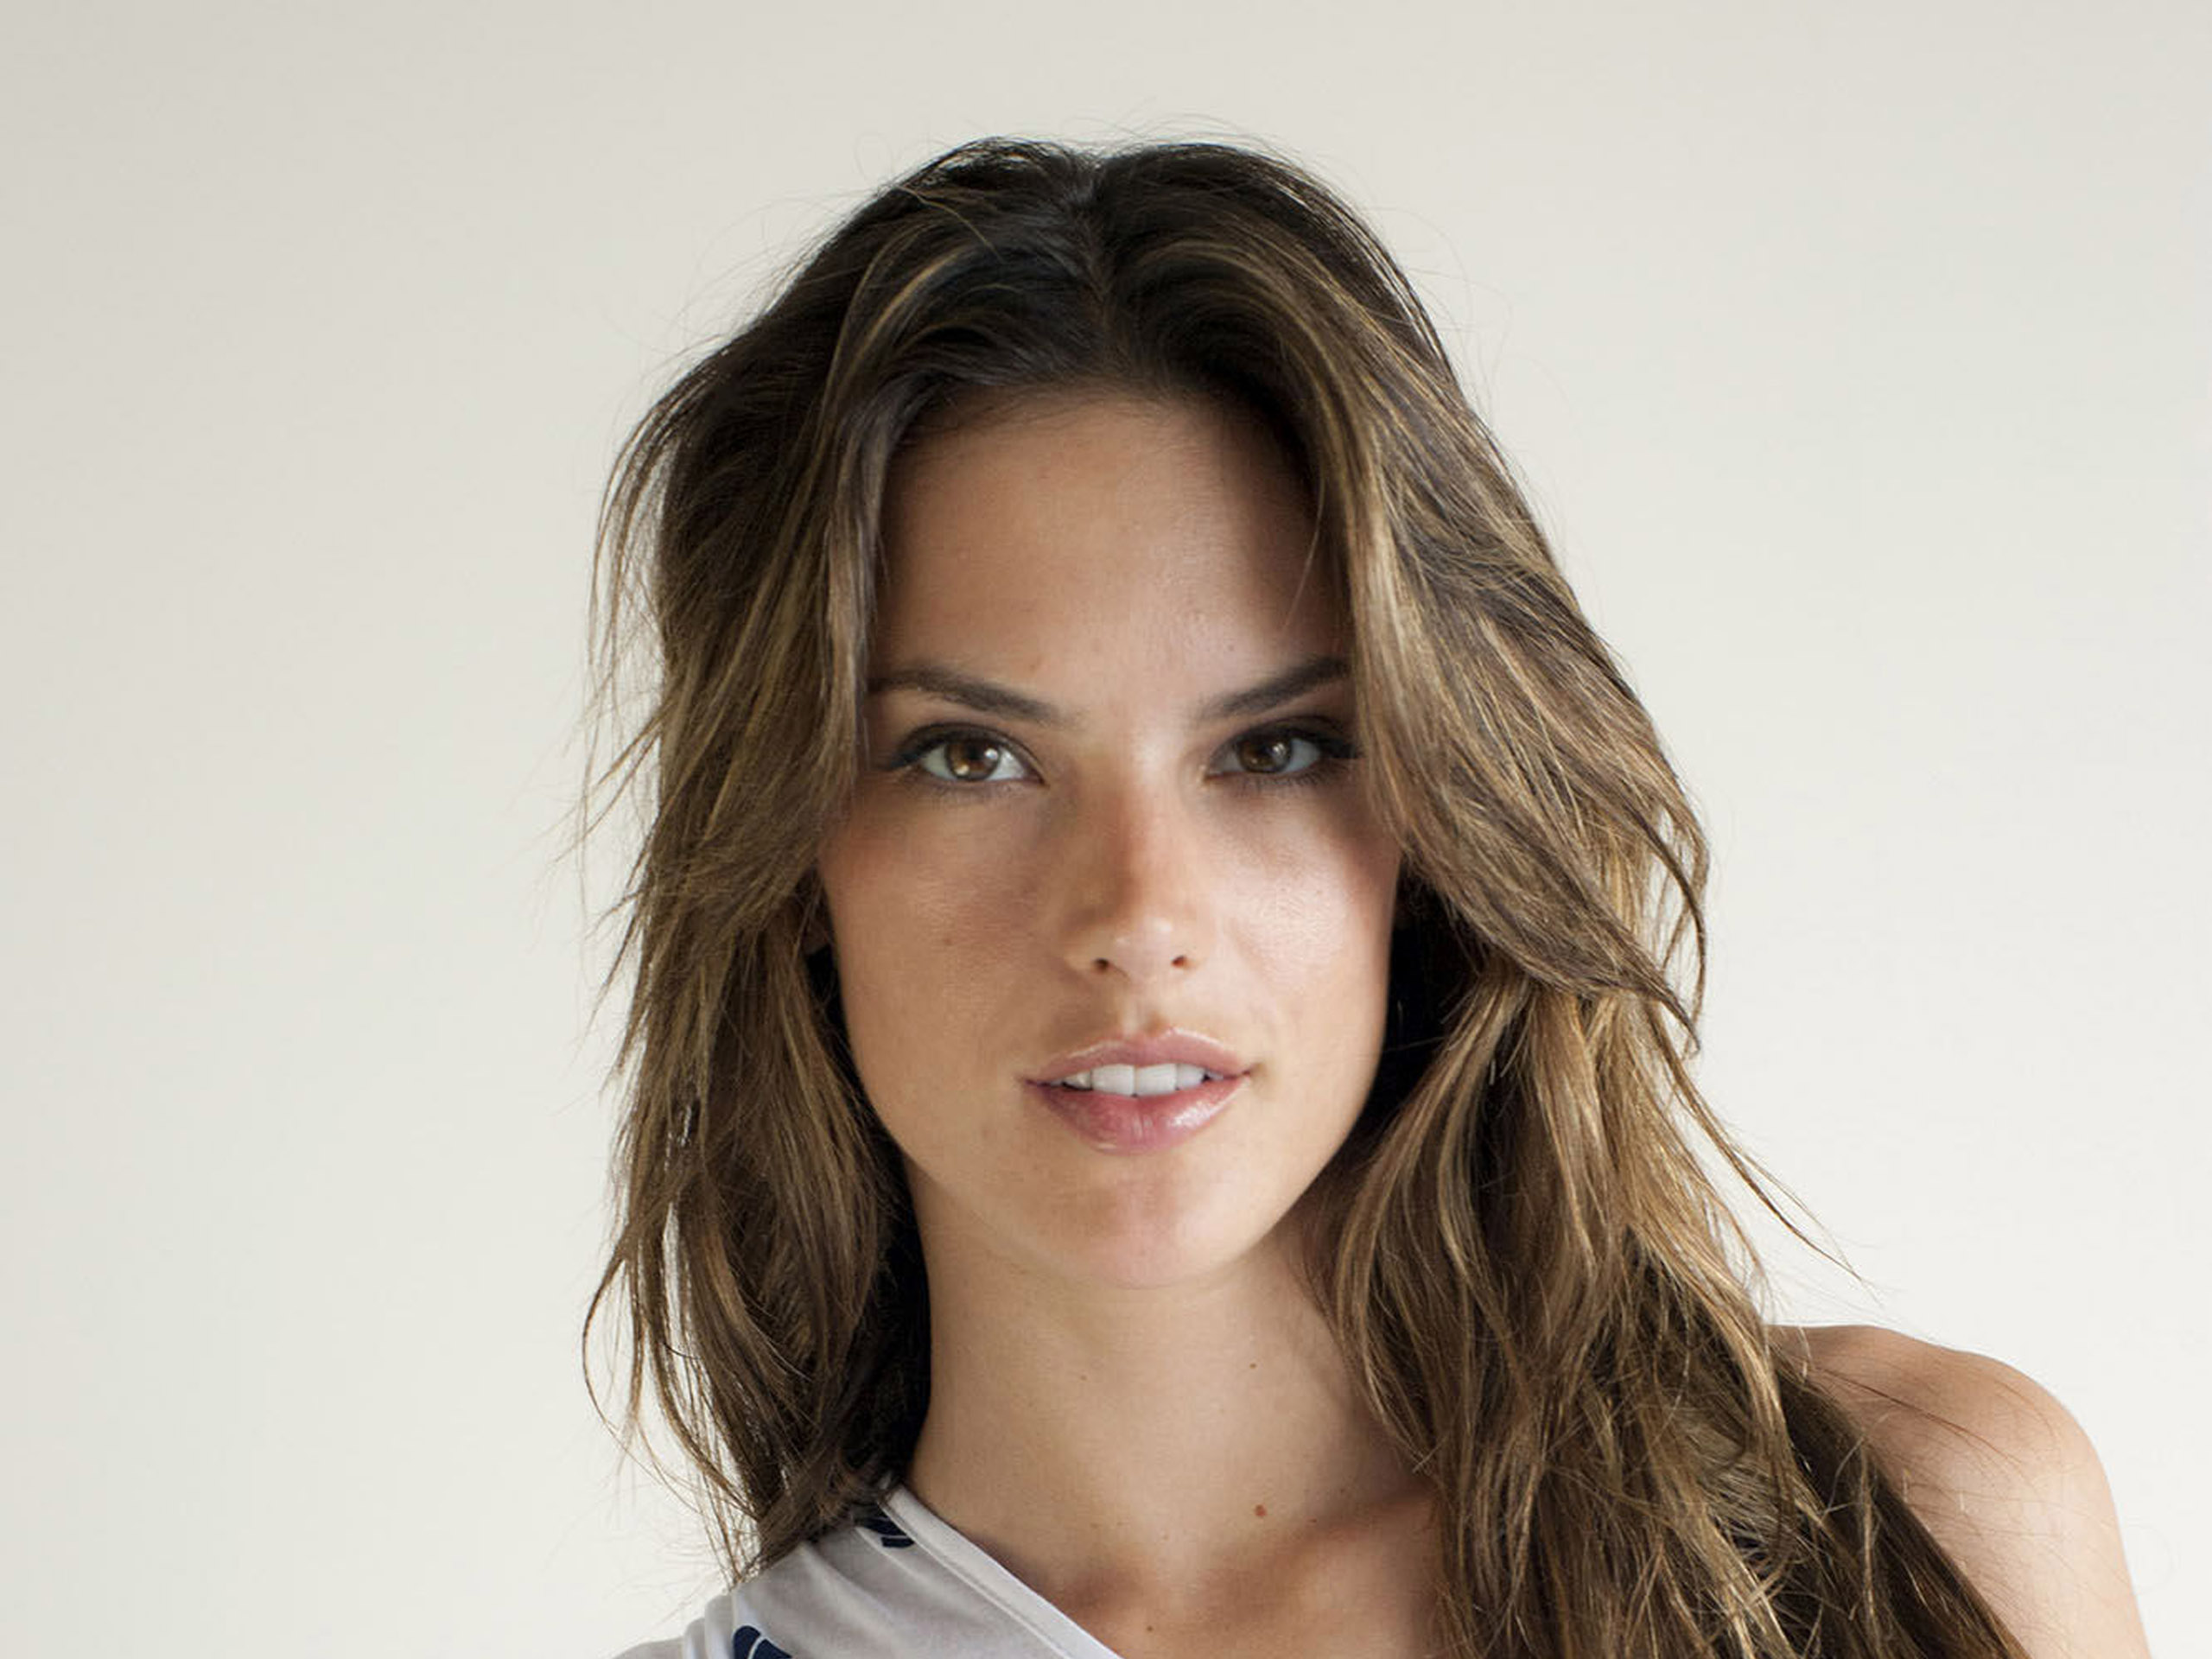 Alessandra Ambrosio Wallpapers HD Wallpaper